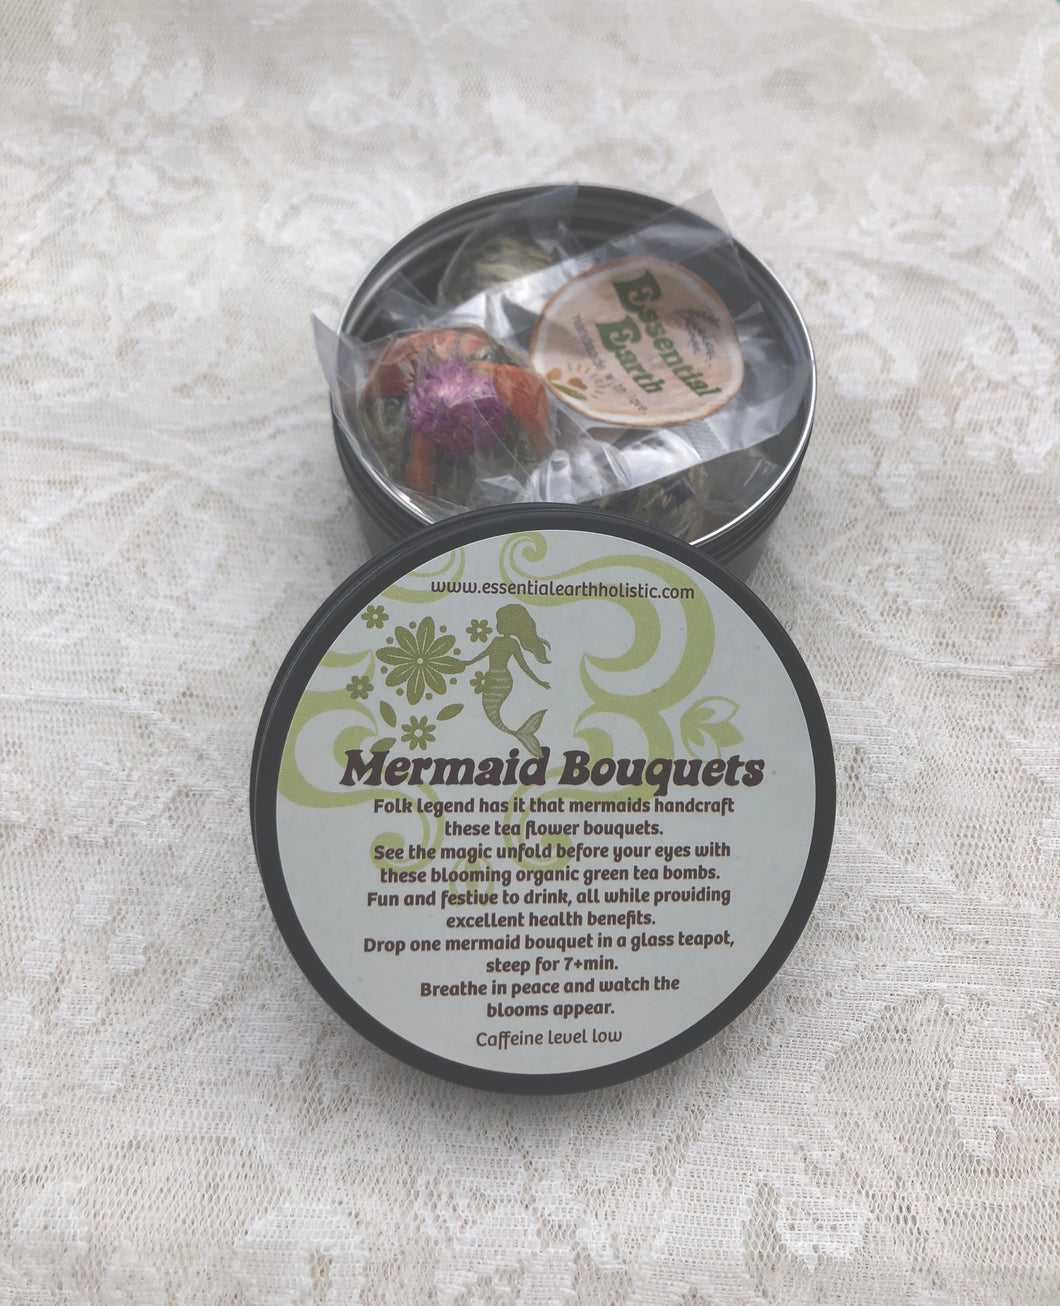 Mermaid Bouquets